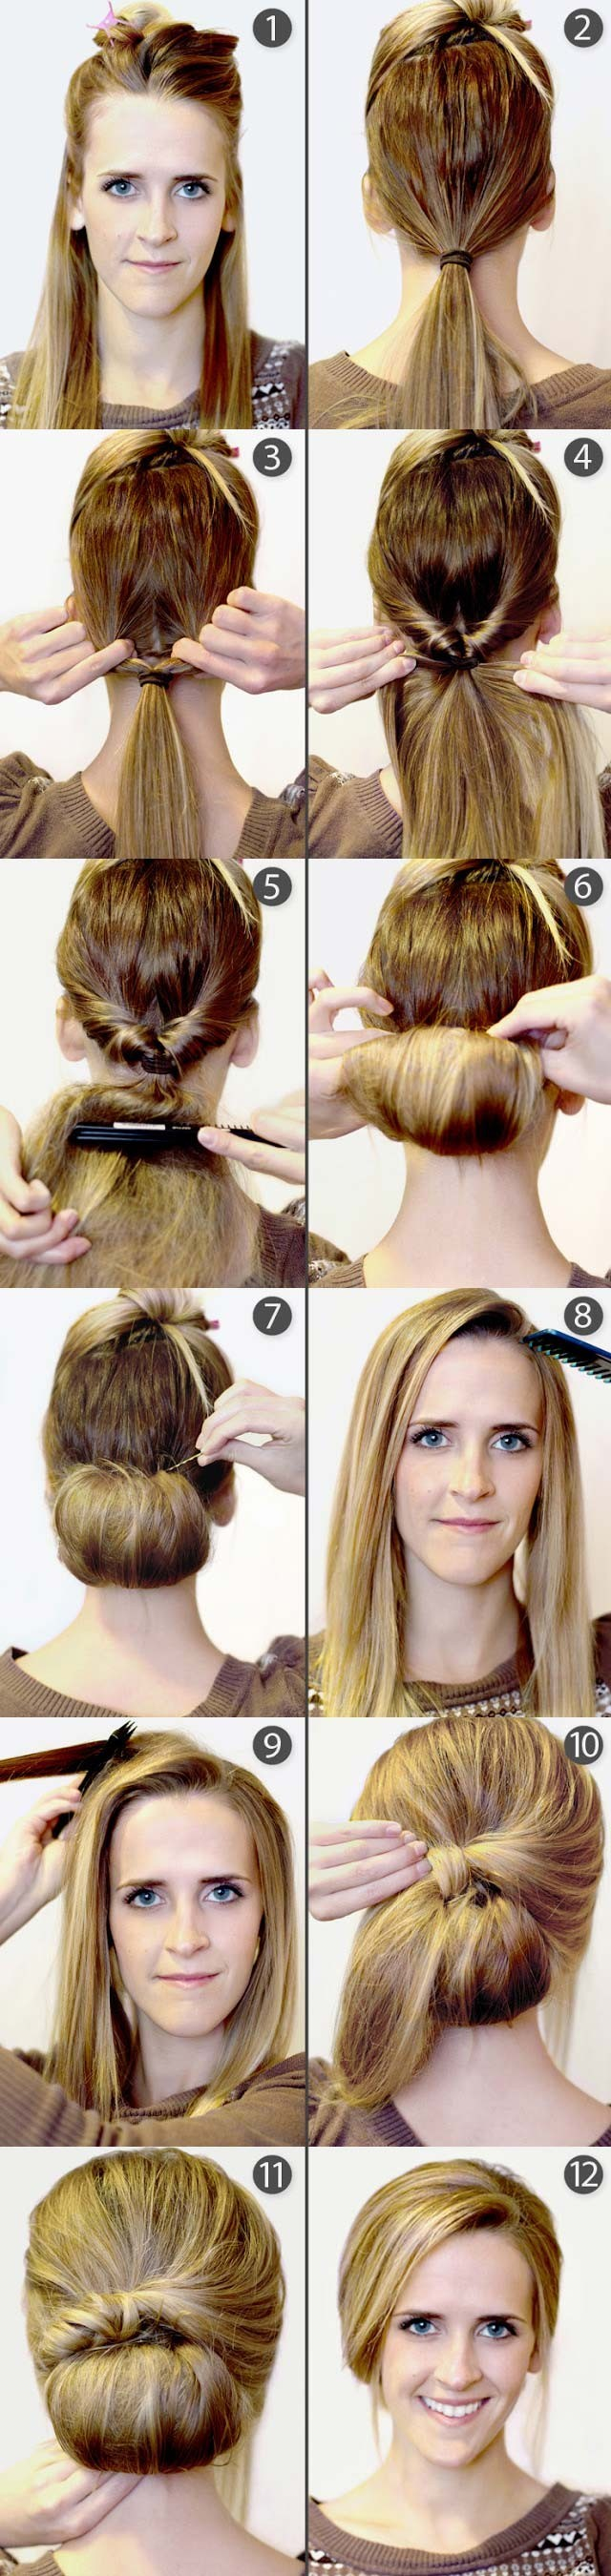 Miraculous 15 Cute Hairstyles Step By Step Hairstyles For Long Hair Short Hairstyles For Black Women Fulllsitofus